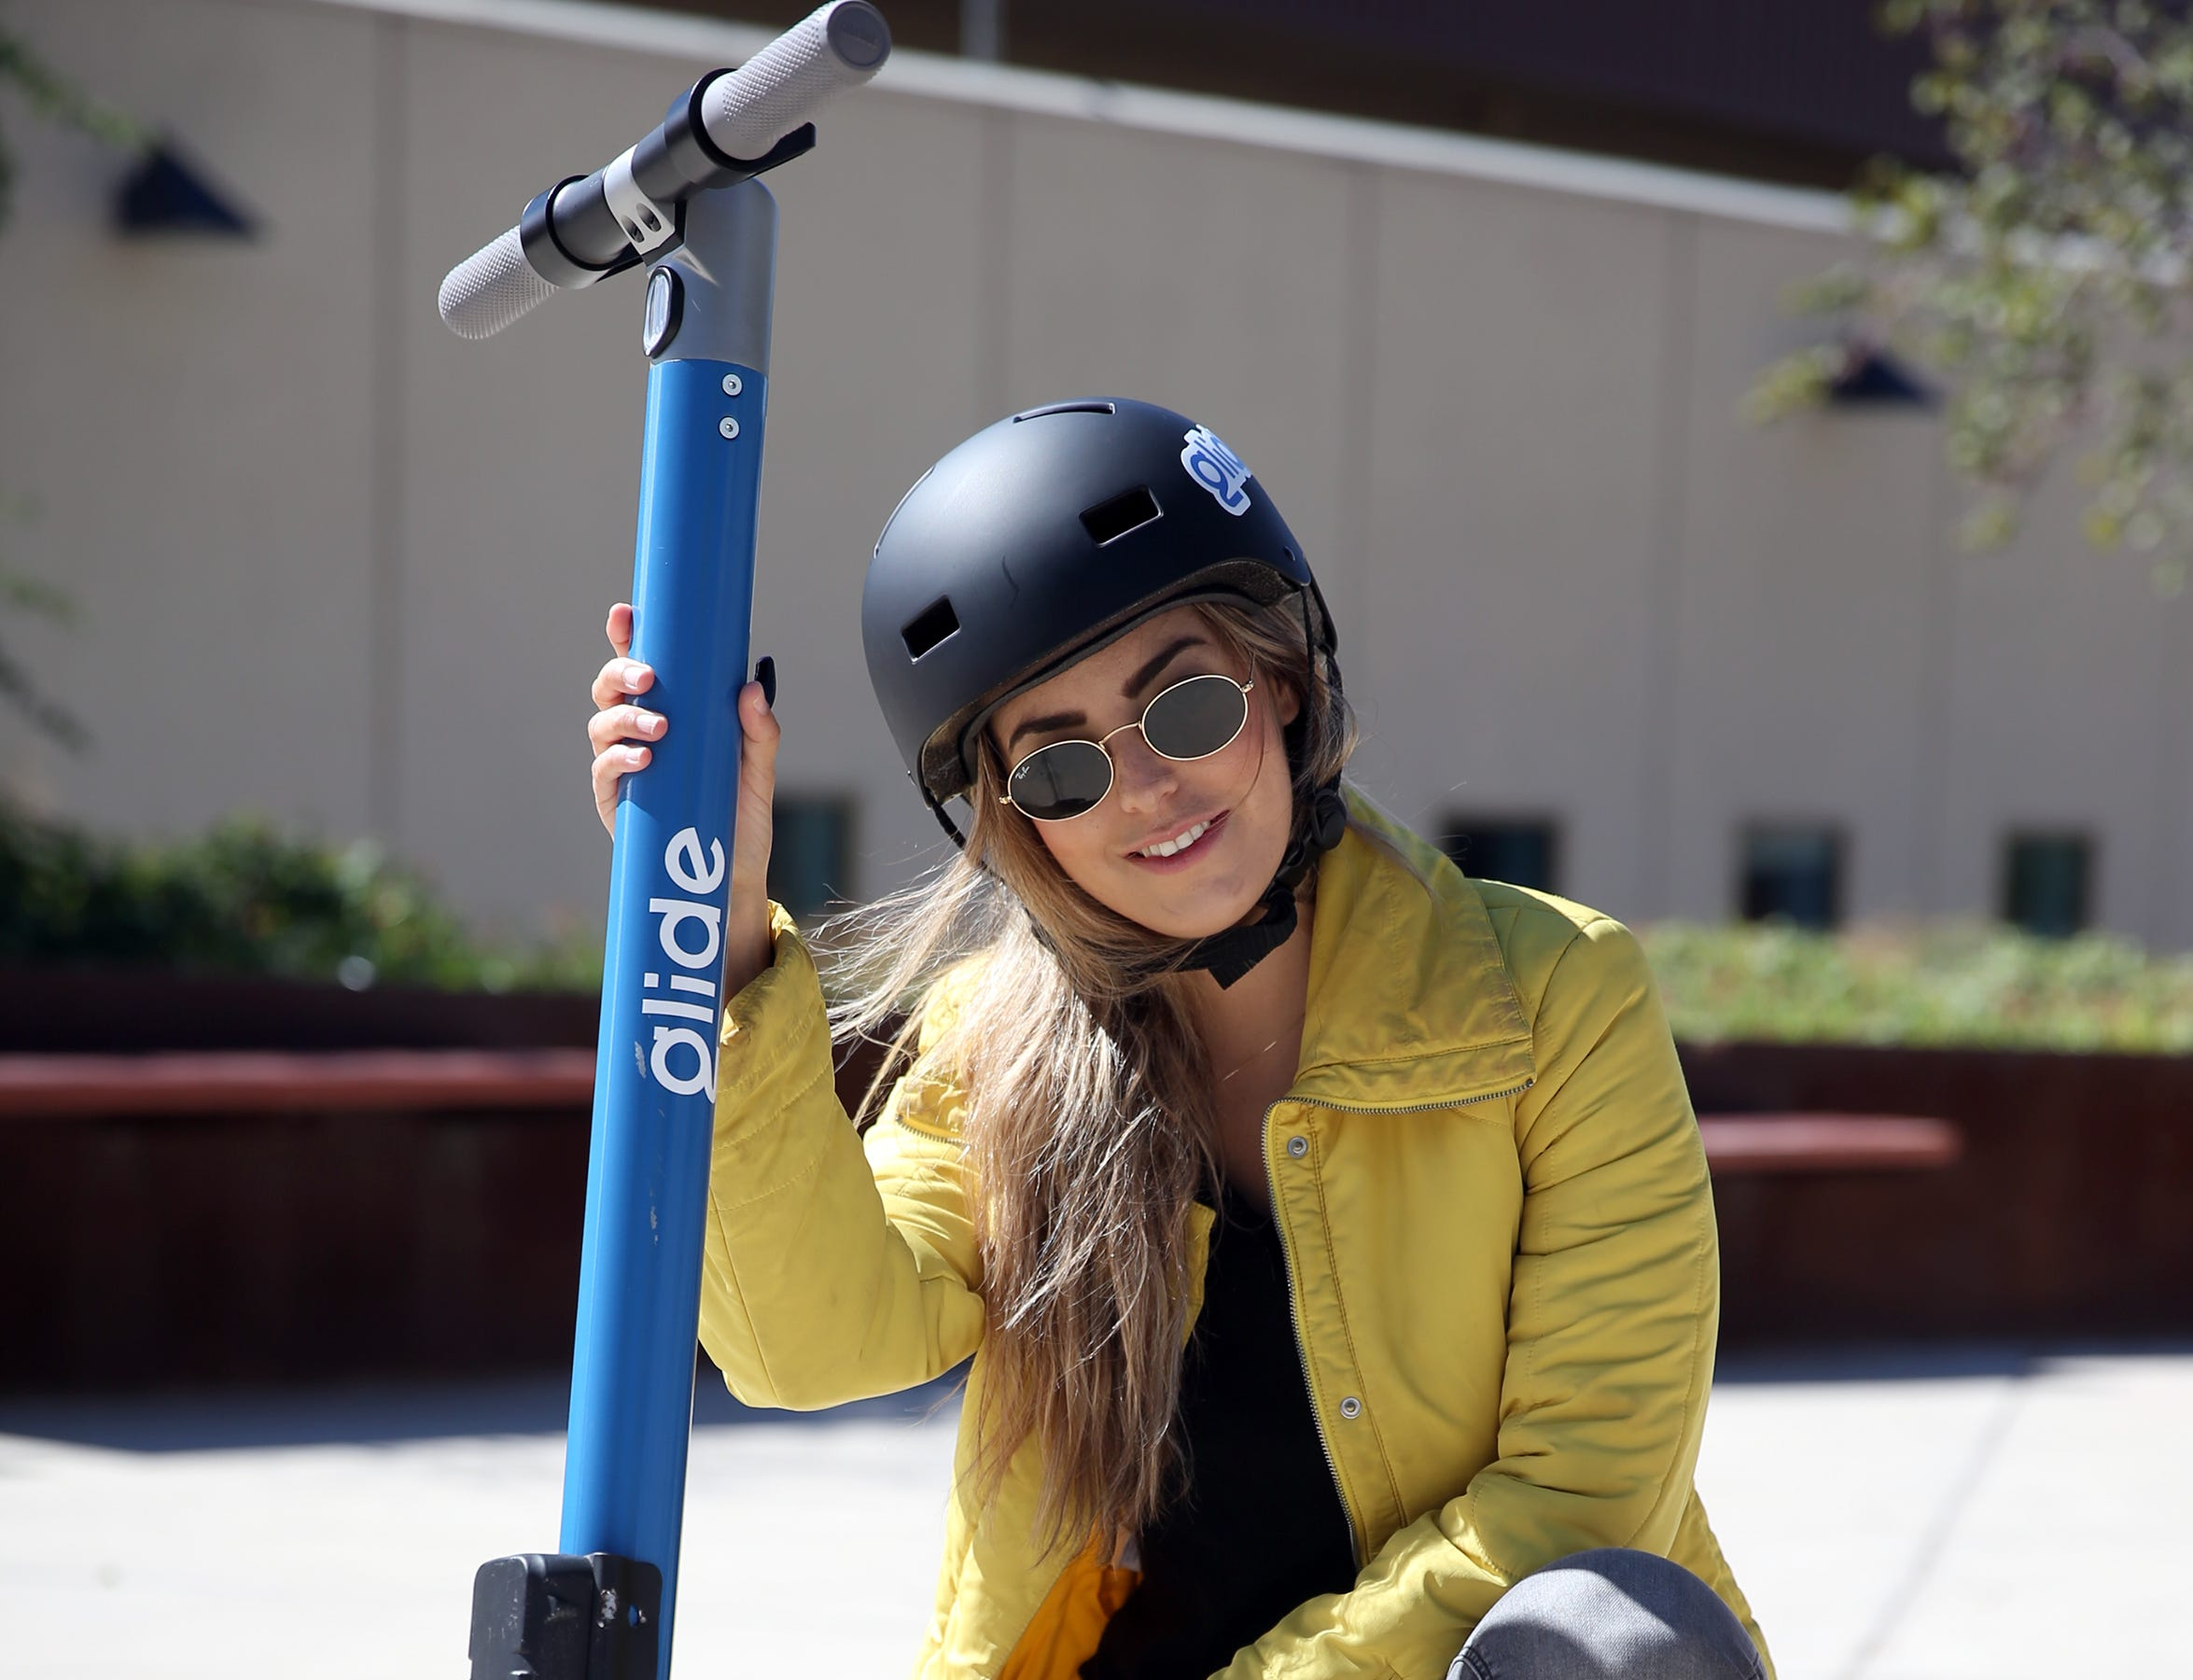 Pauline Sanchez with one of the new Glide electric scooters.